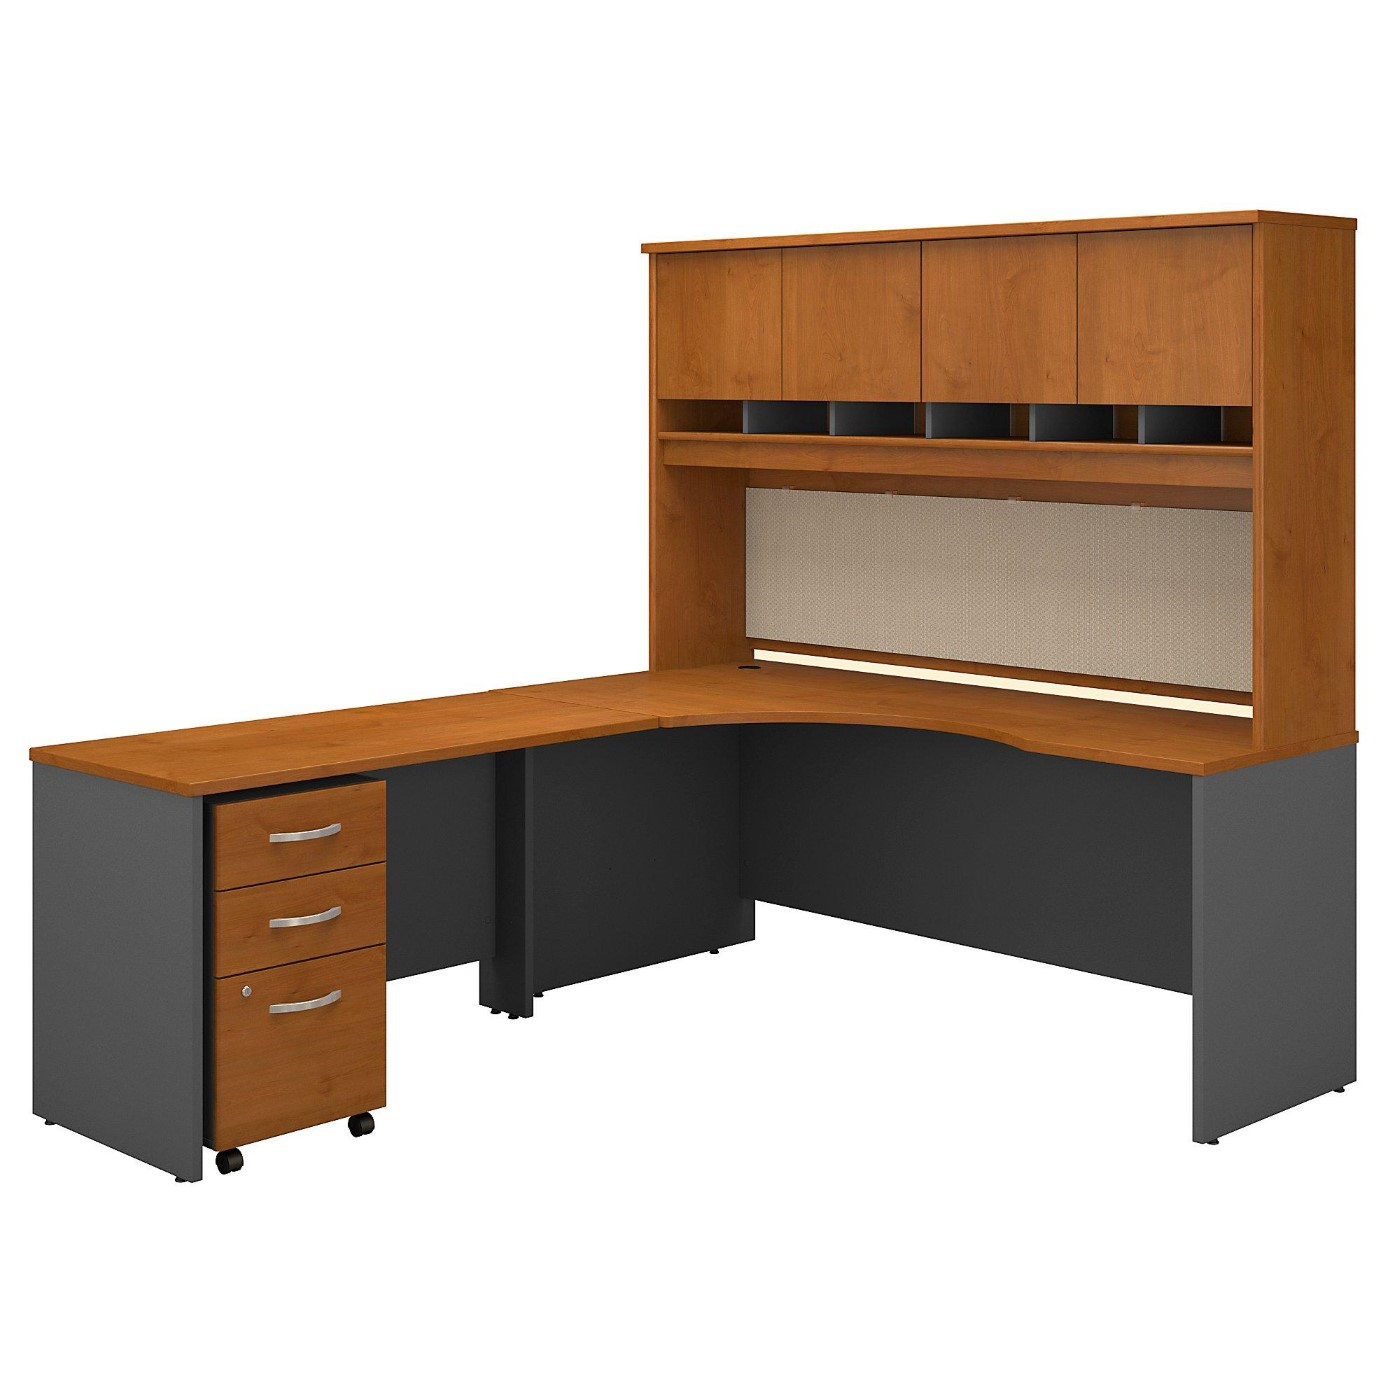 <font color=#c60><b>BUSH BUSINESS FURNITURE SERIES C 72W RIGHT HANDED CORNER DESK WITH HUTCH AND MOBILE FILE CABINET. FREE SHIPPING</font></b></font></b>